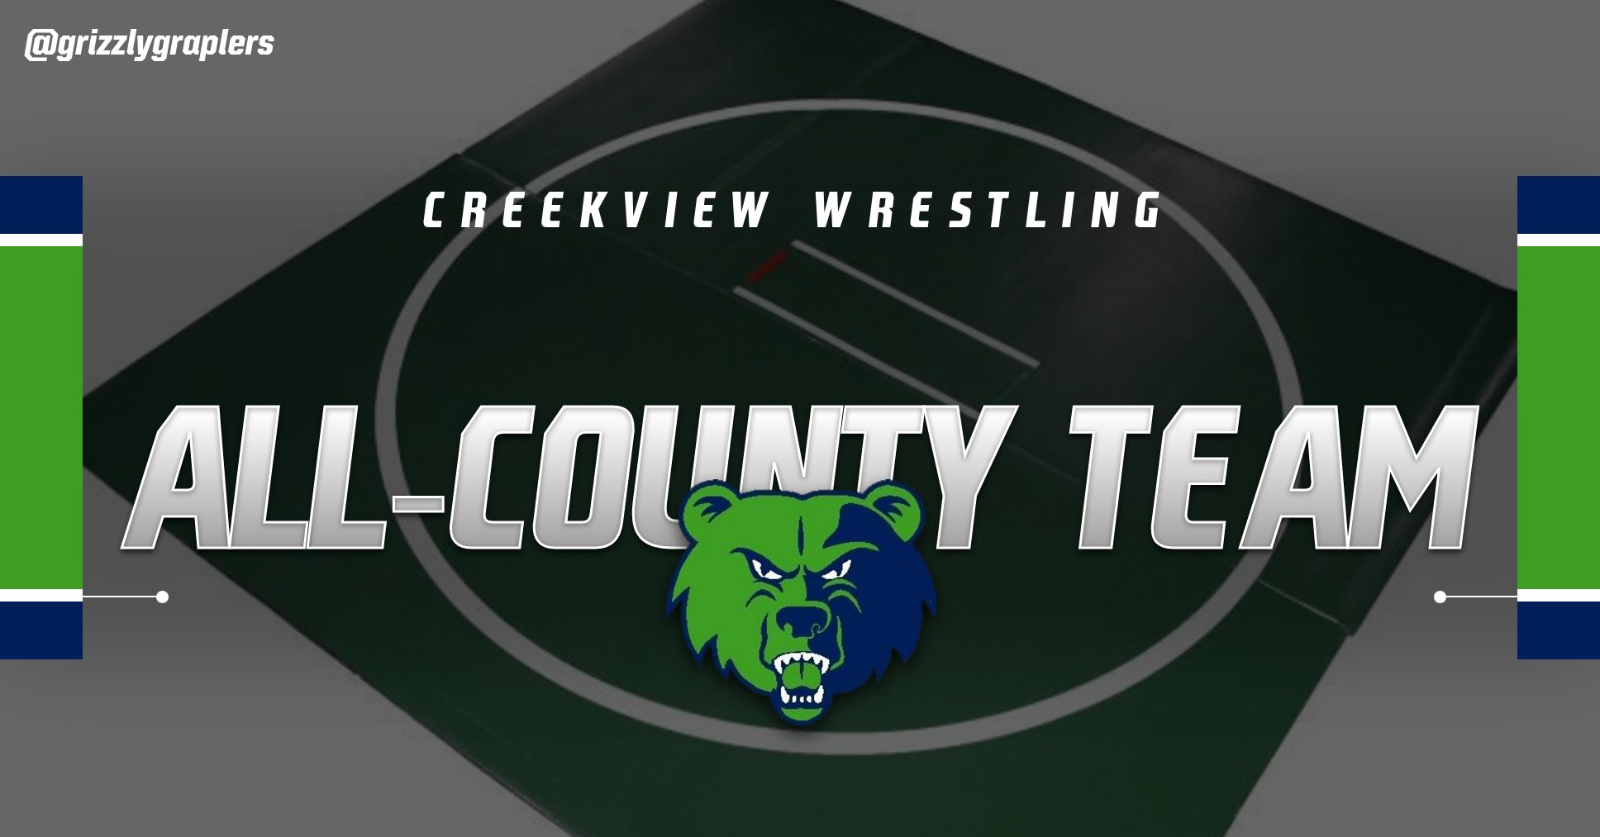 Wrestling All County